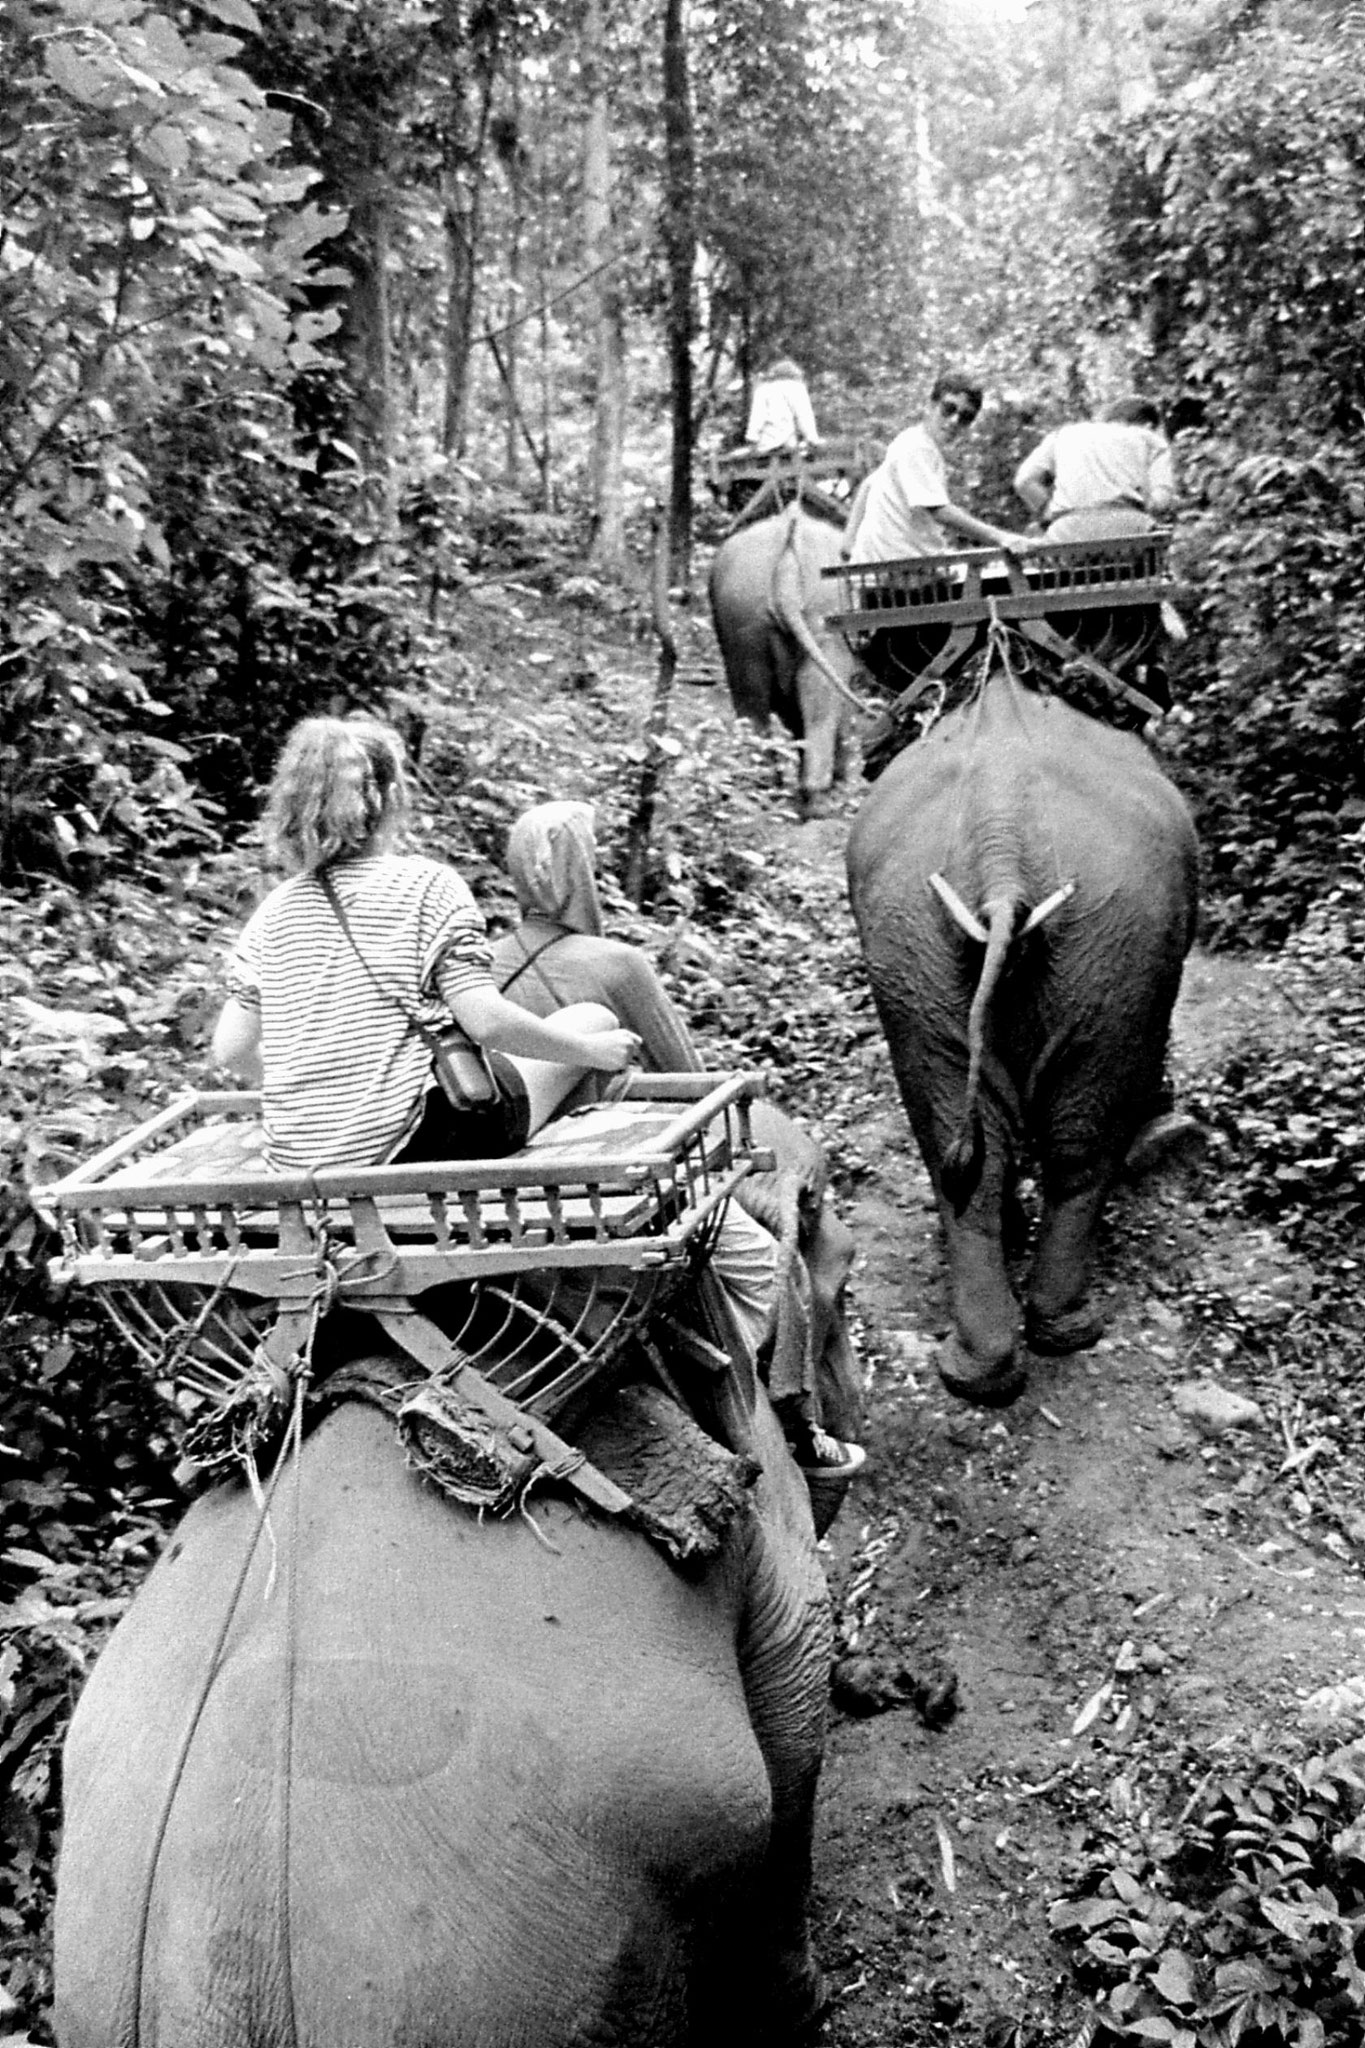 13/6/1990: 24: Last day of Trek, on elephant